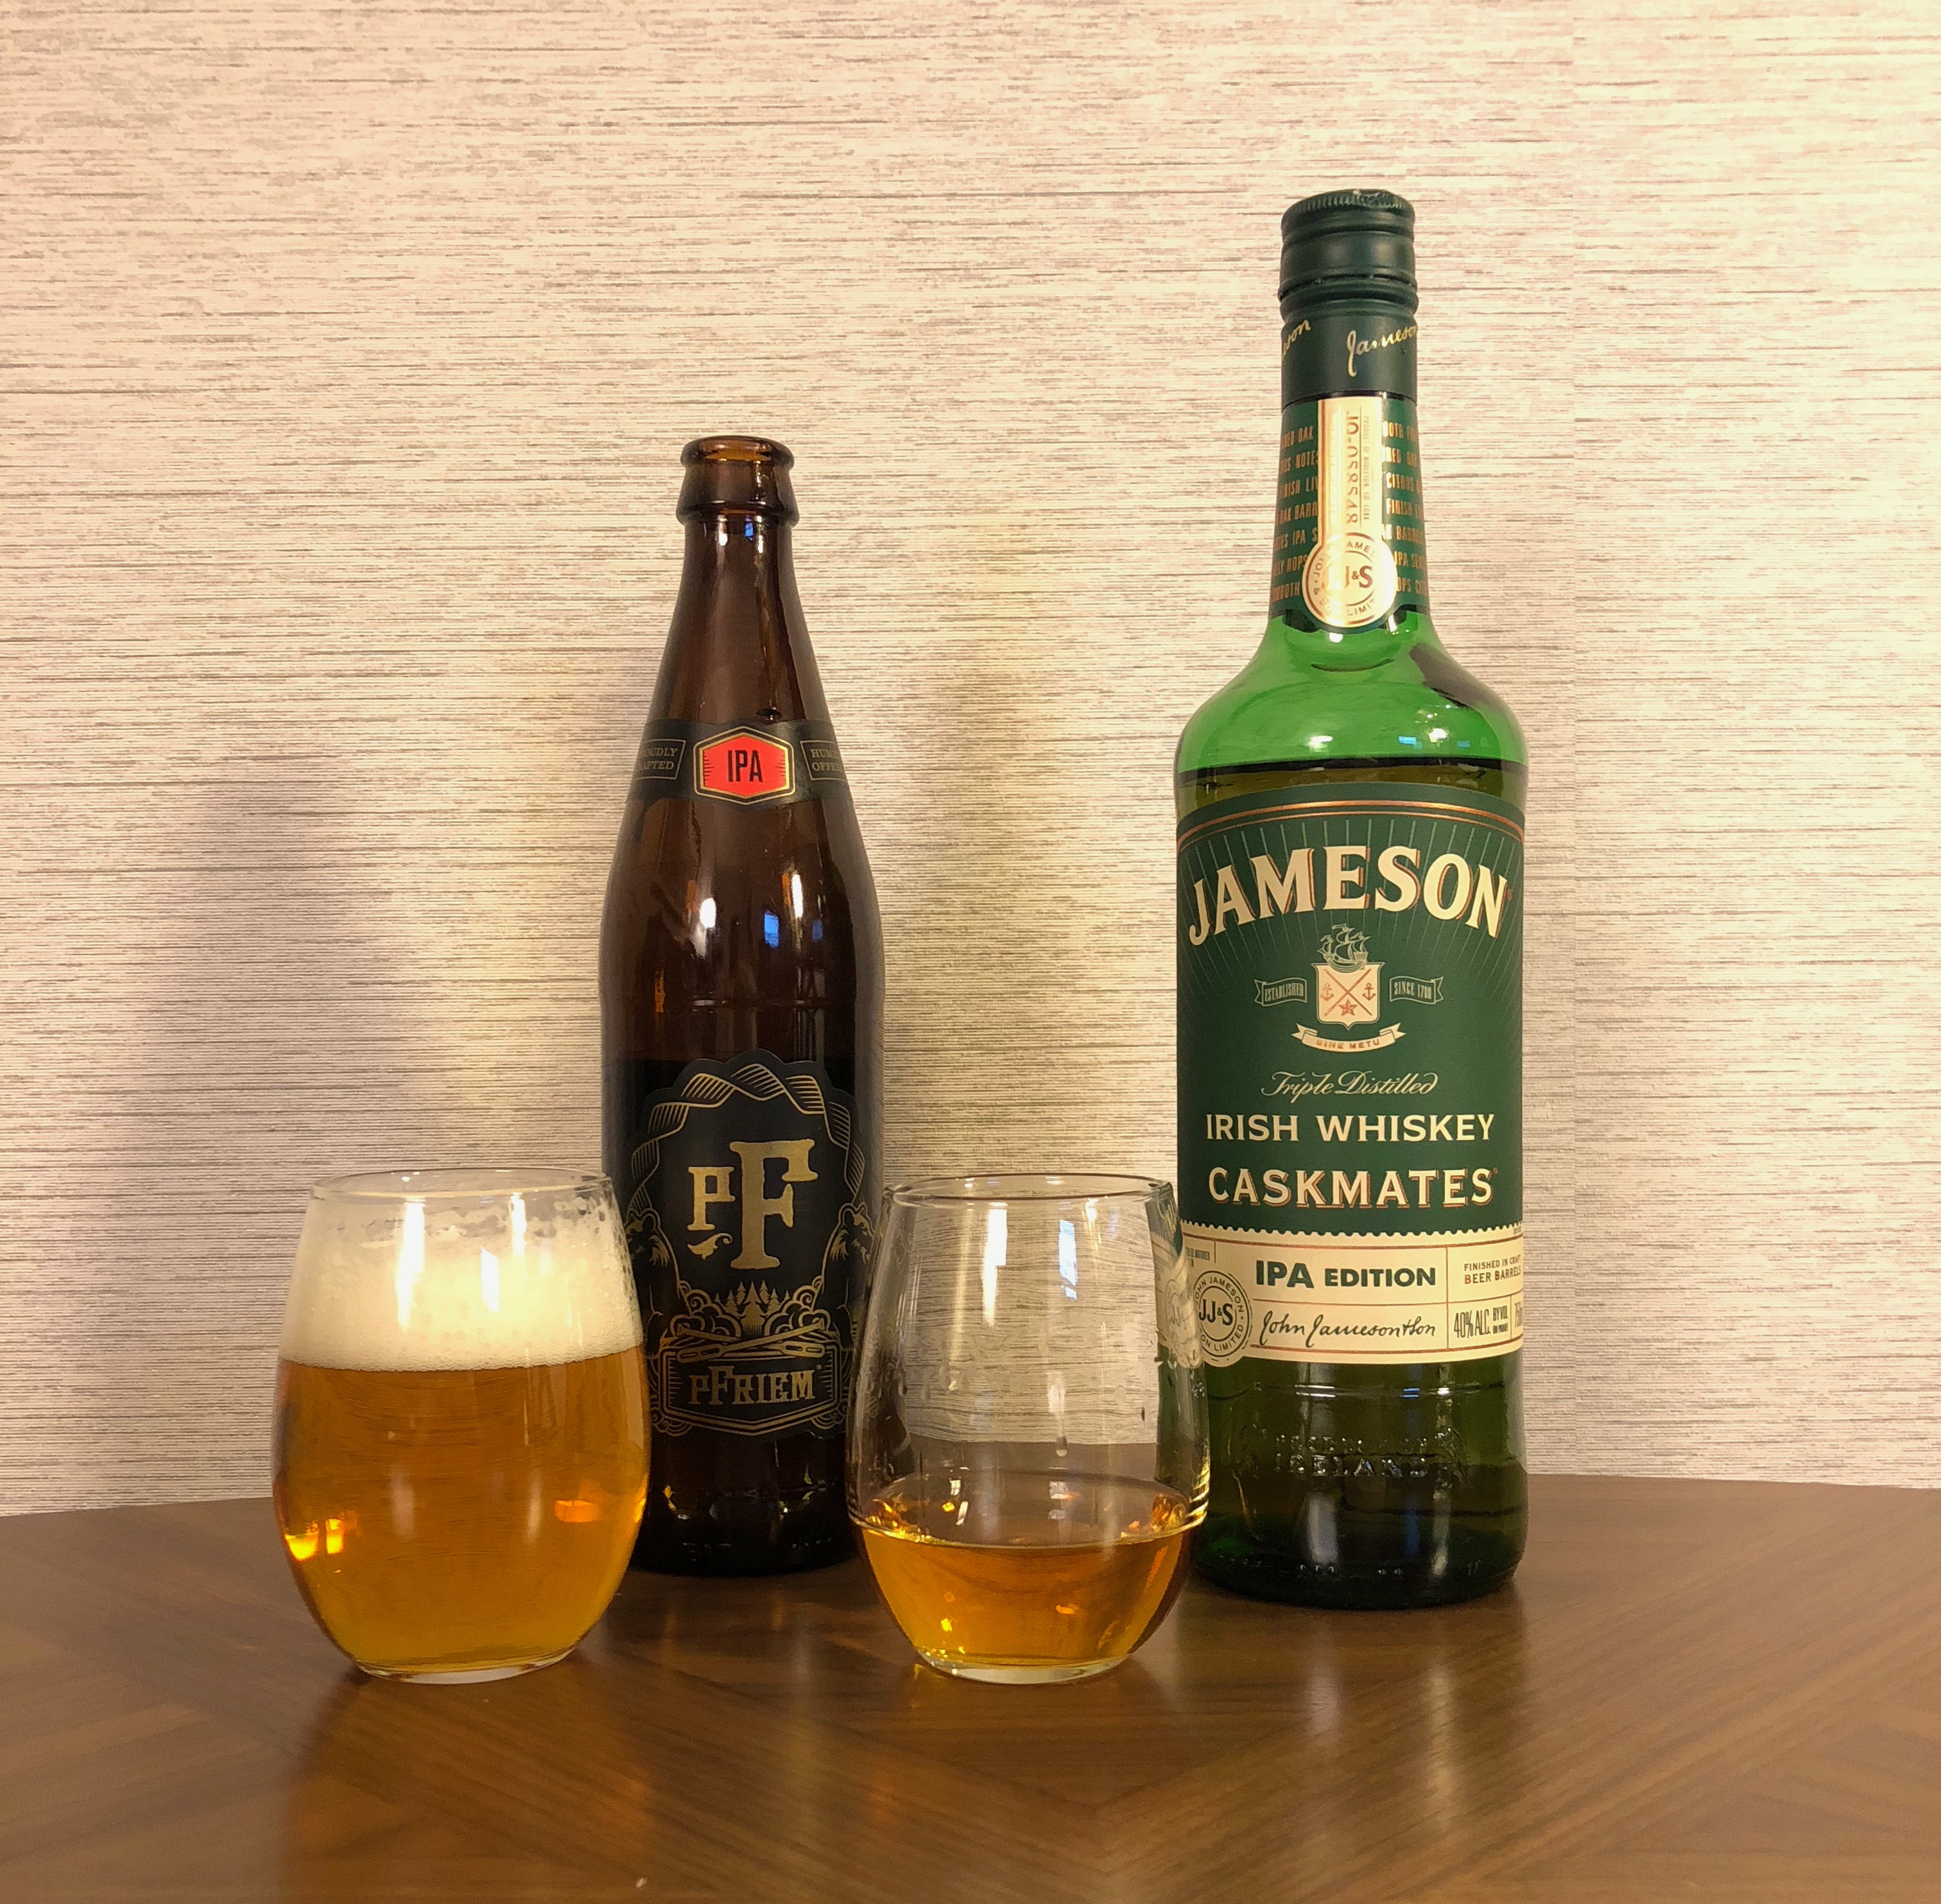 Jameson Caskmates IPA Edition poured alongside pFriem Family Brewers IPA.